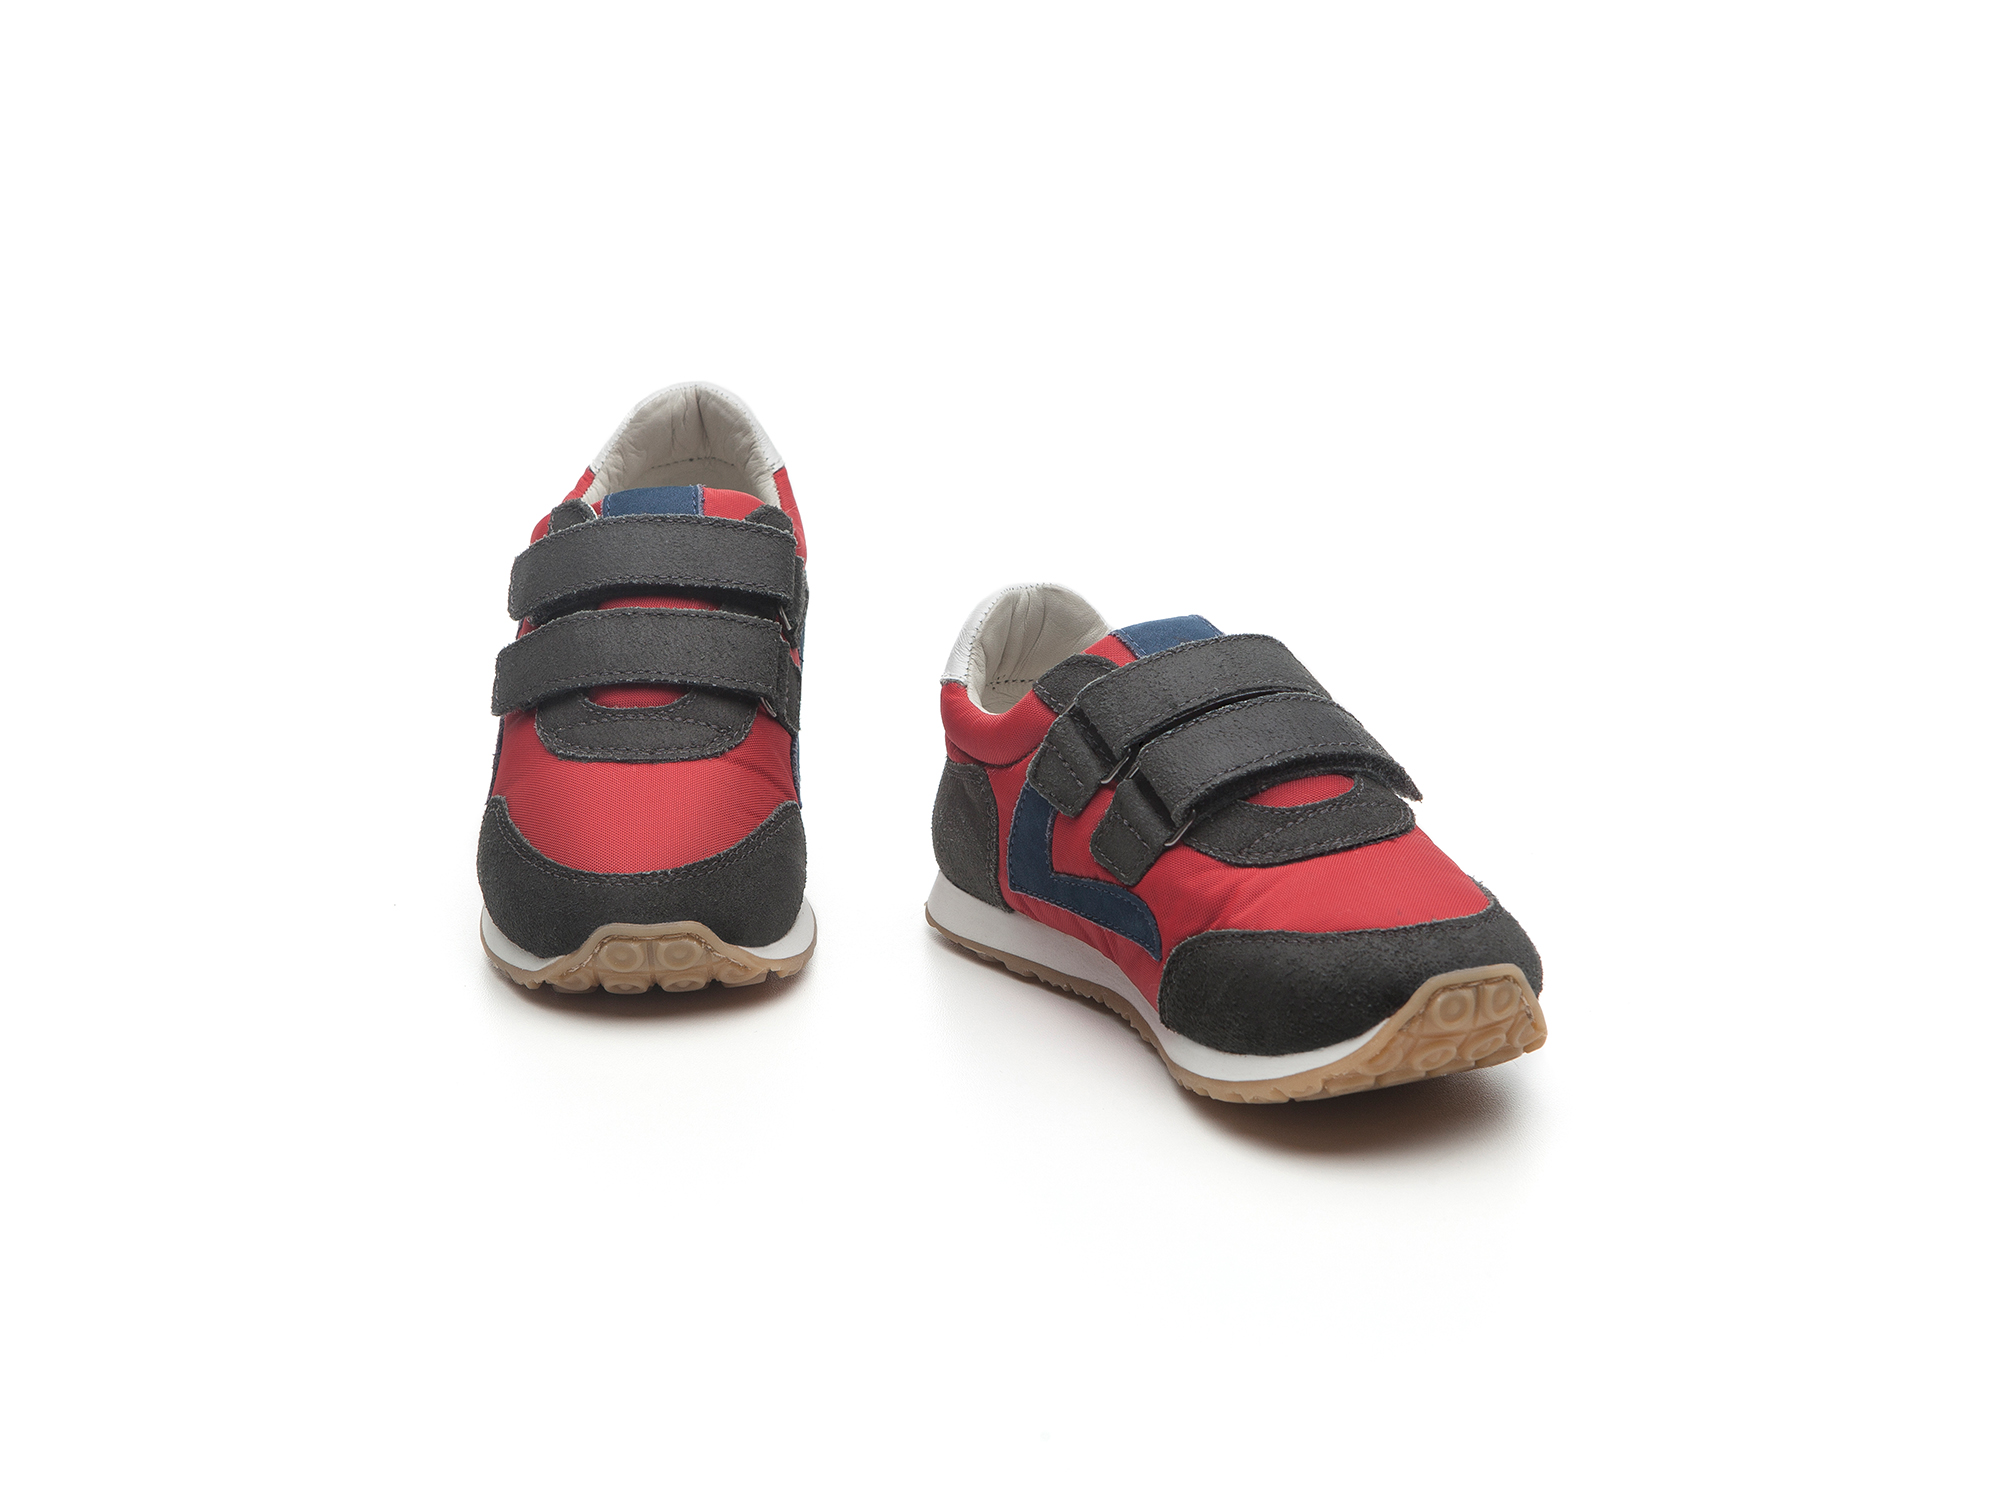 Tênis Little Jump Red Nylon/ Brushed Ash  Toddler 2 à 4 anos - 1